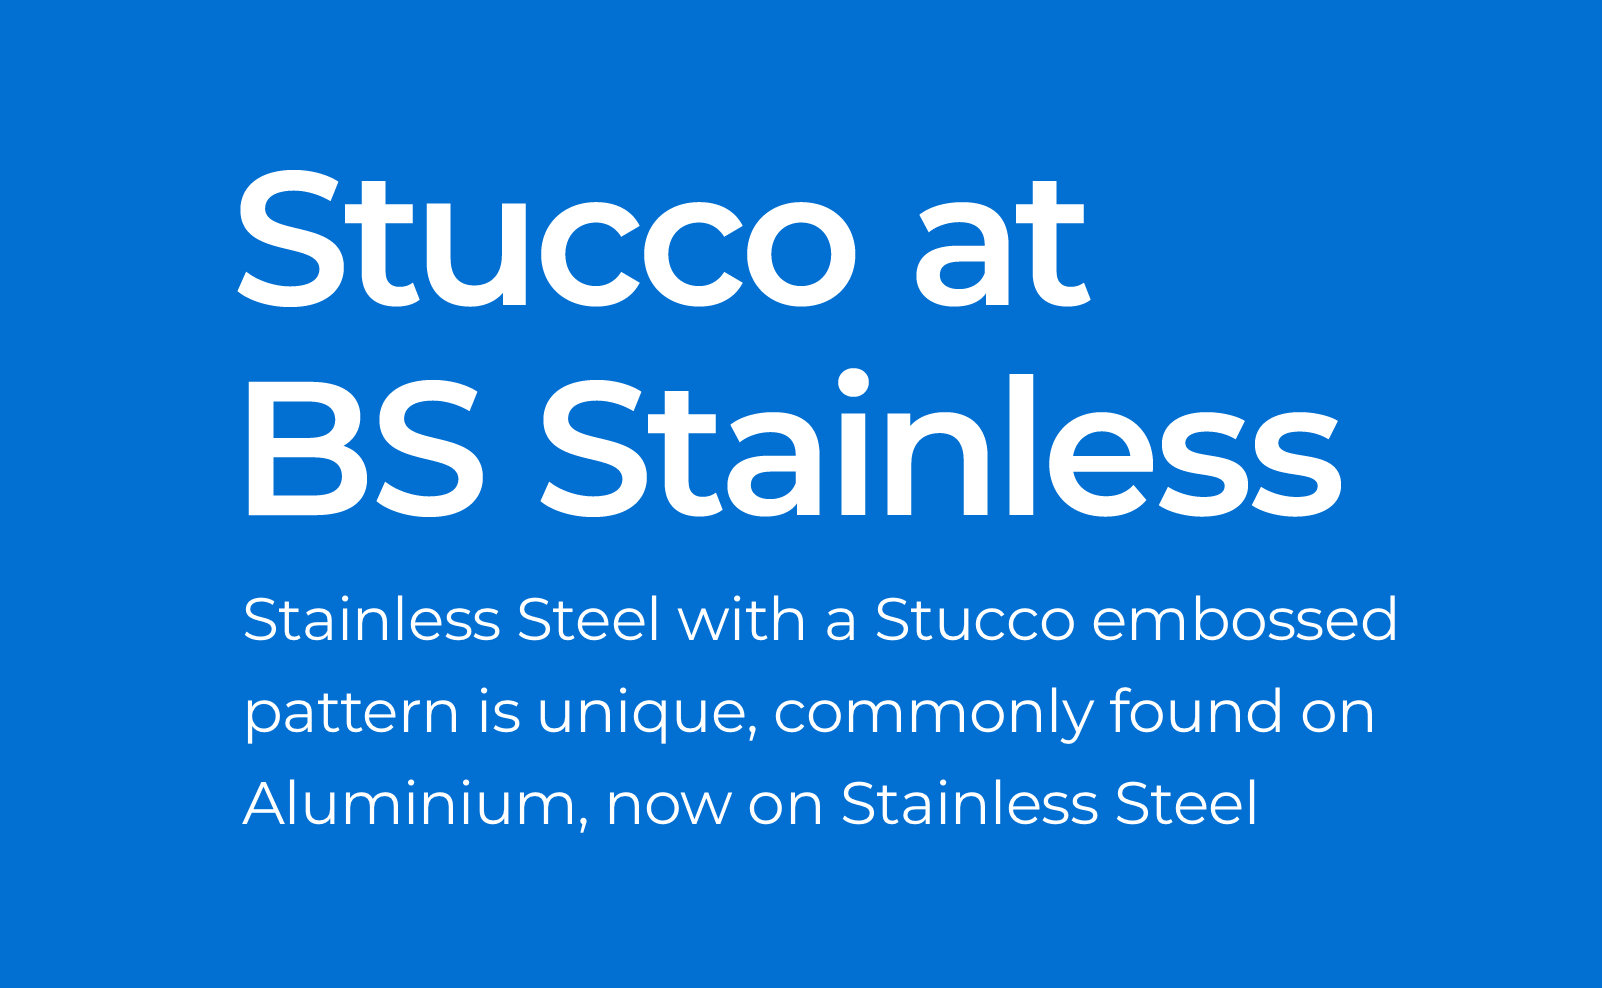 Stucco at BS Stainless